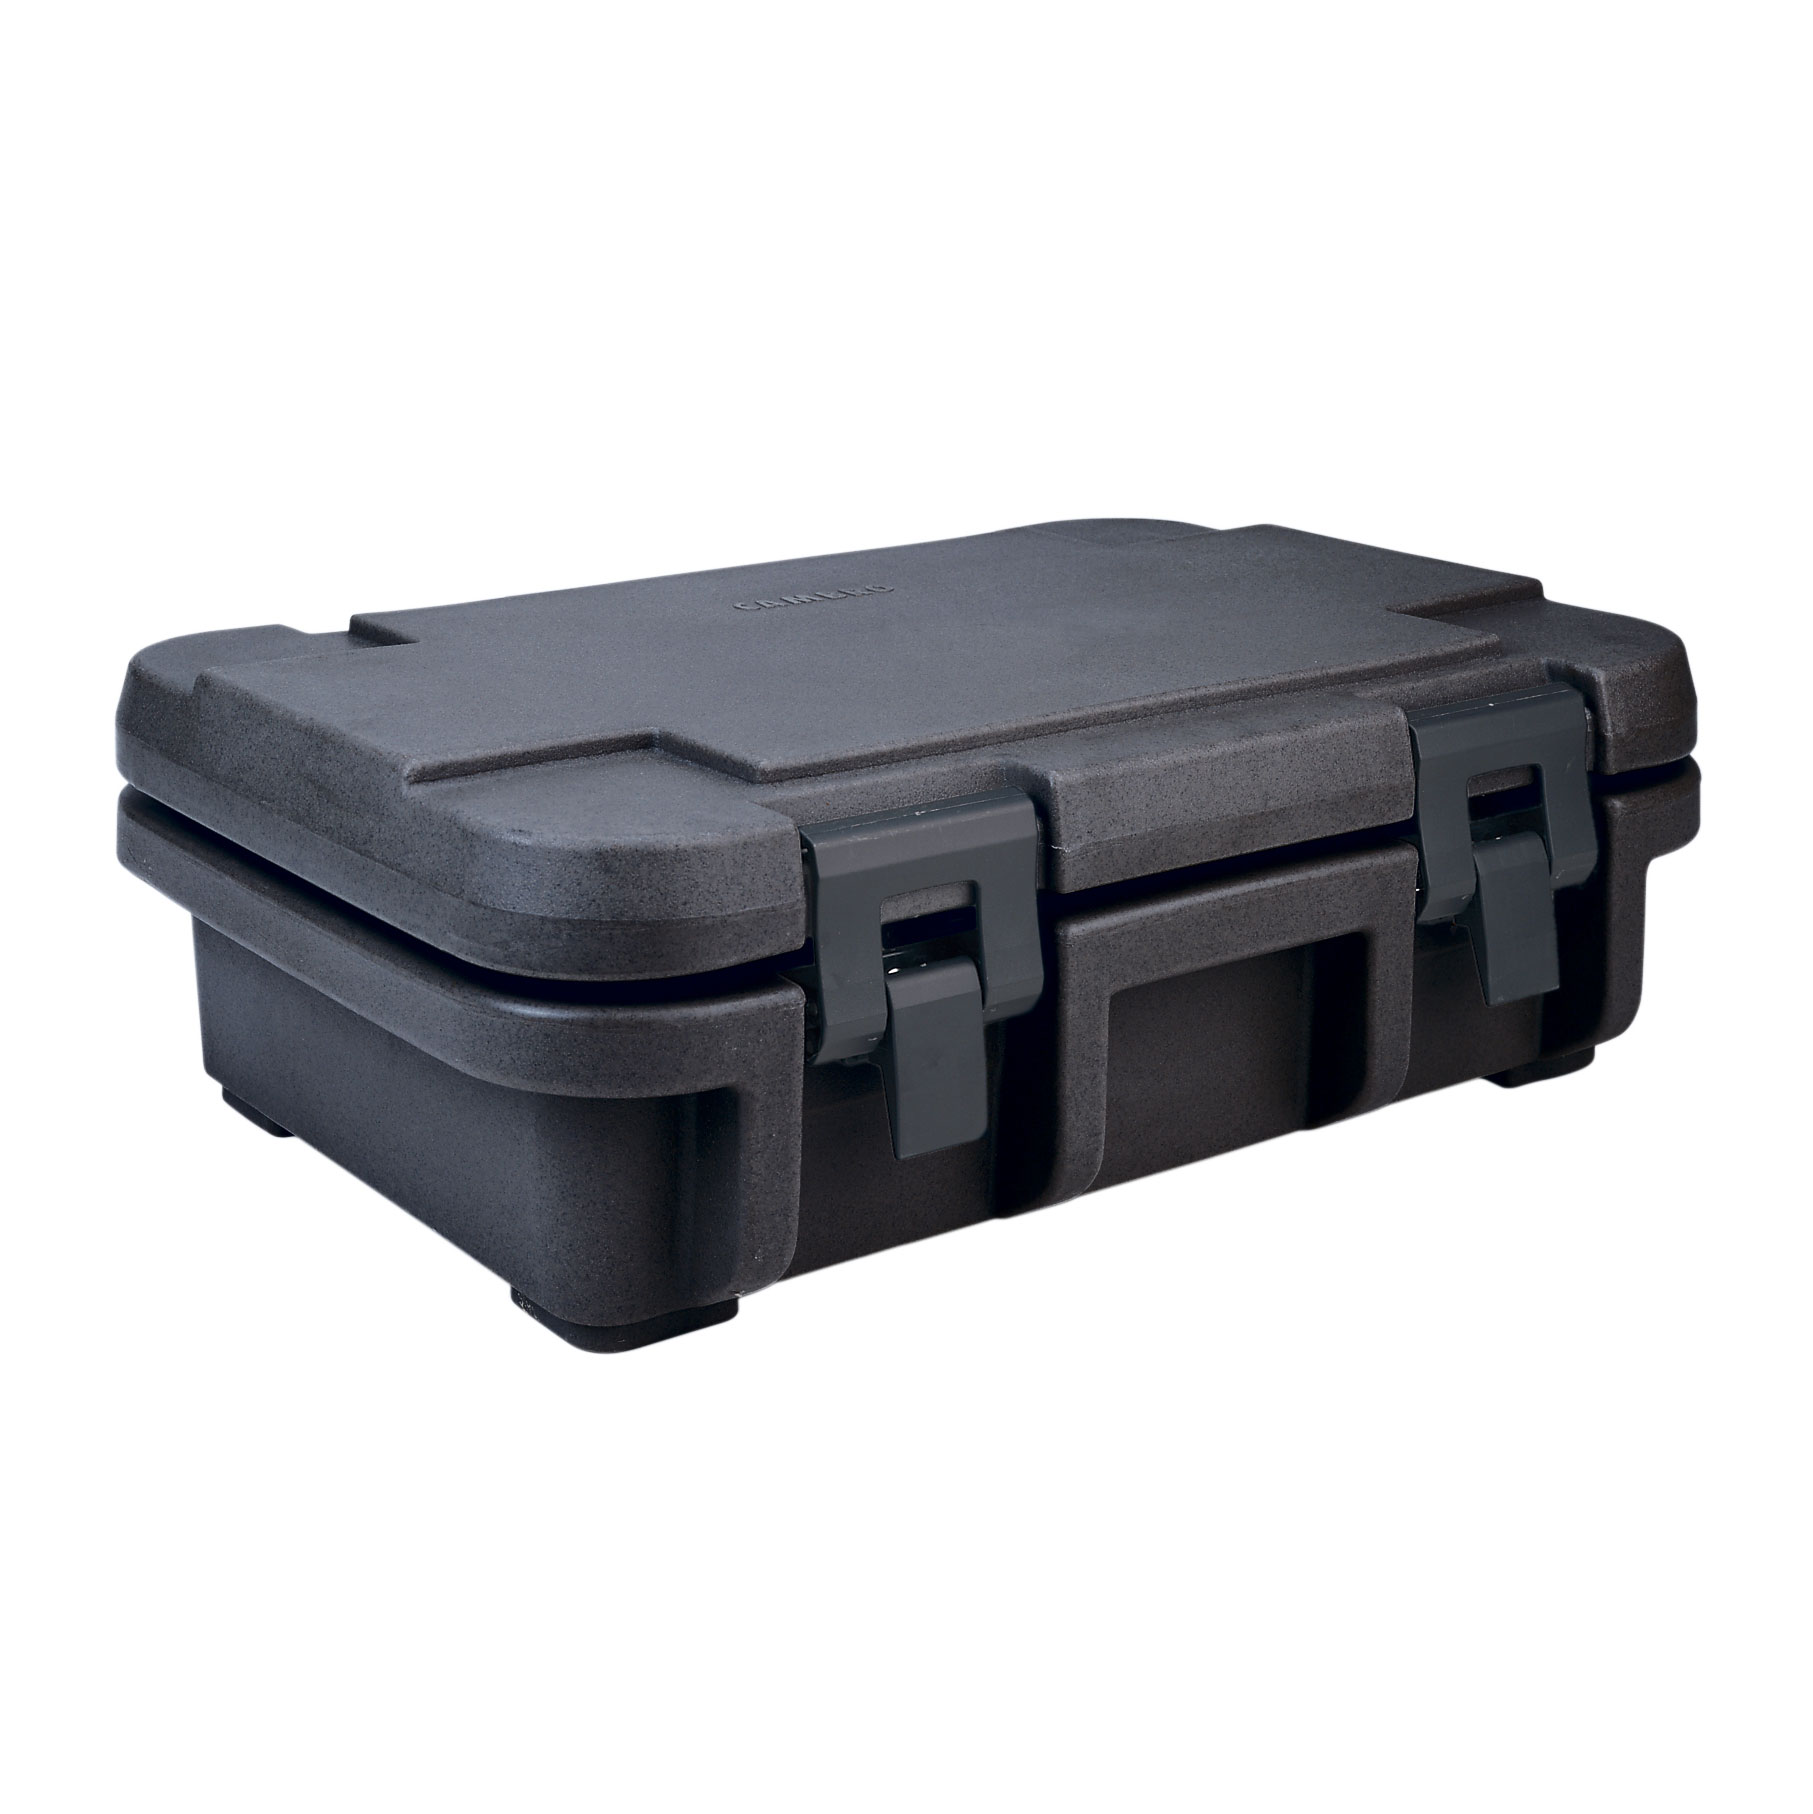 Cambro UPC140110 food carrier, insulated plastic